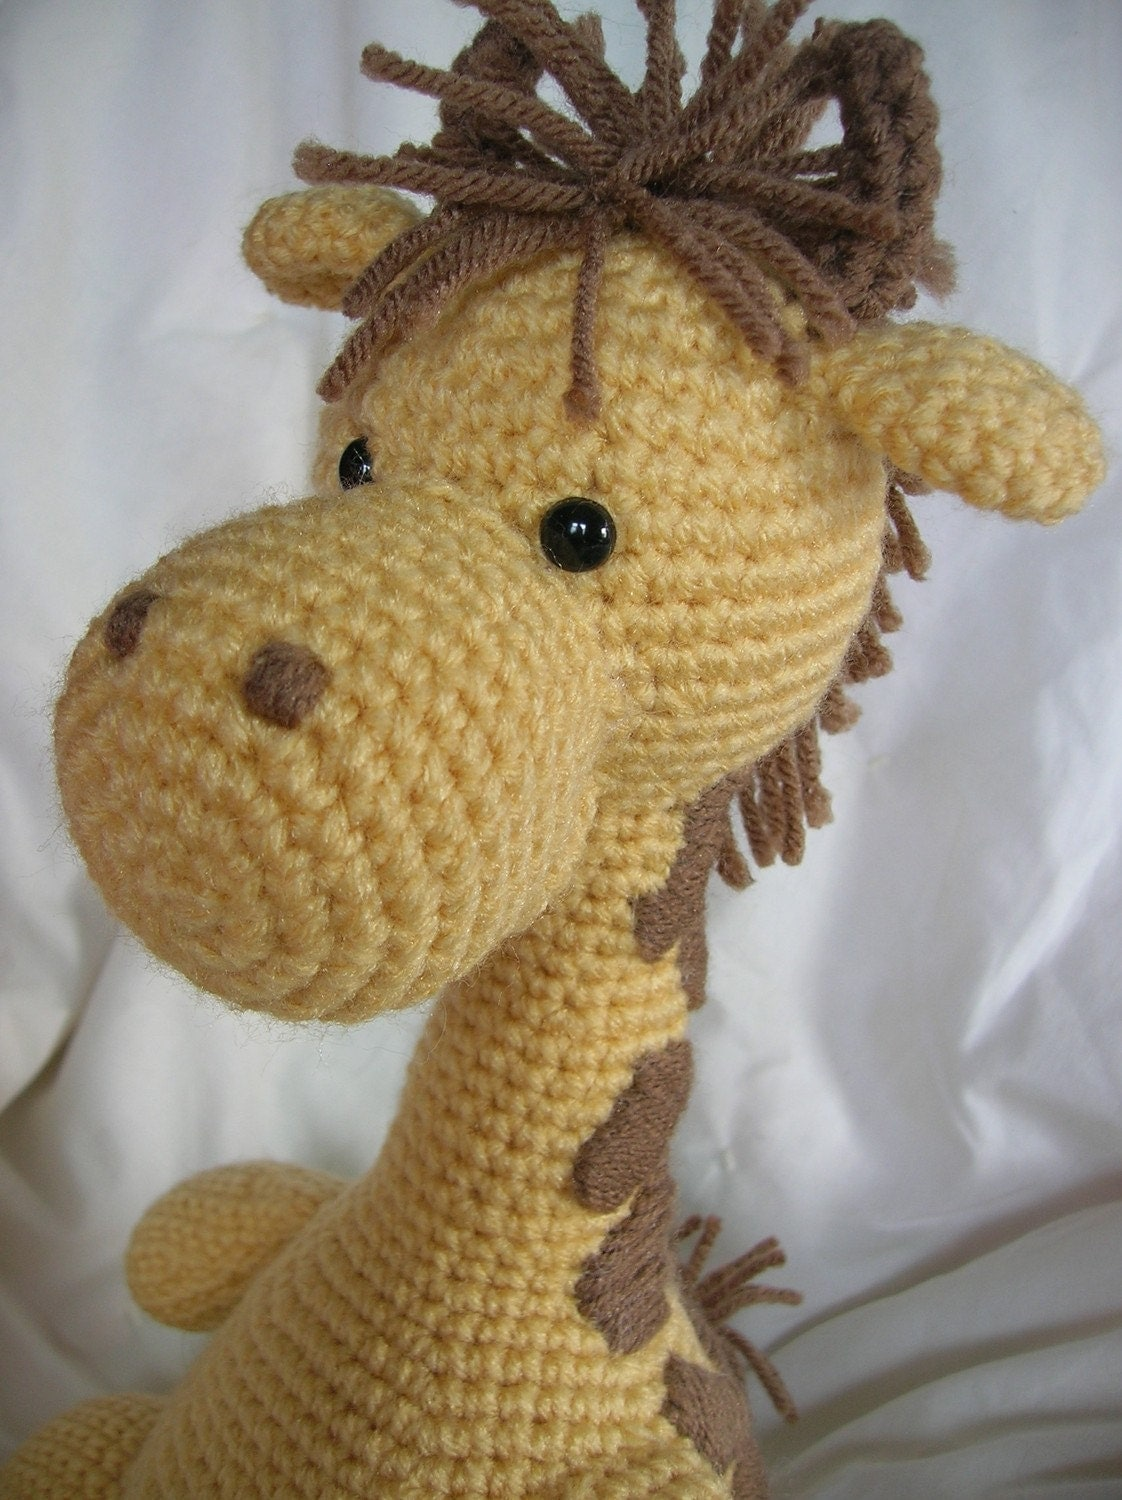 Crochet Patterns Animals Free : 1500 Free Amigurumi Patterns: Giraffe - Free animal crochet pattern